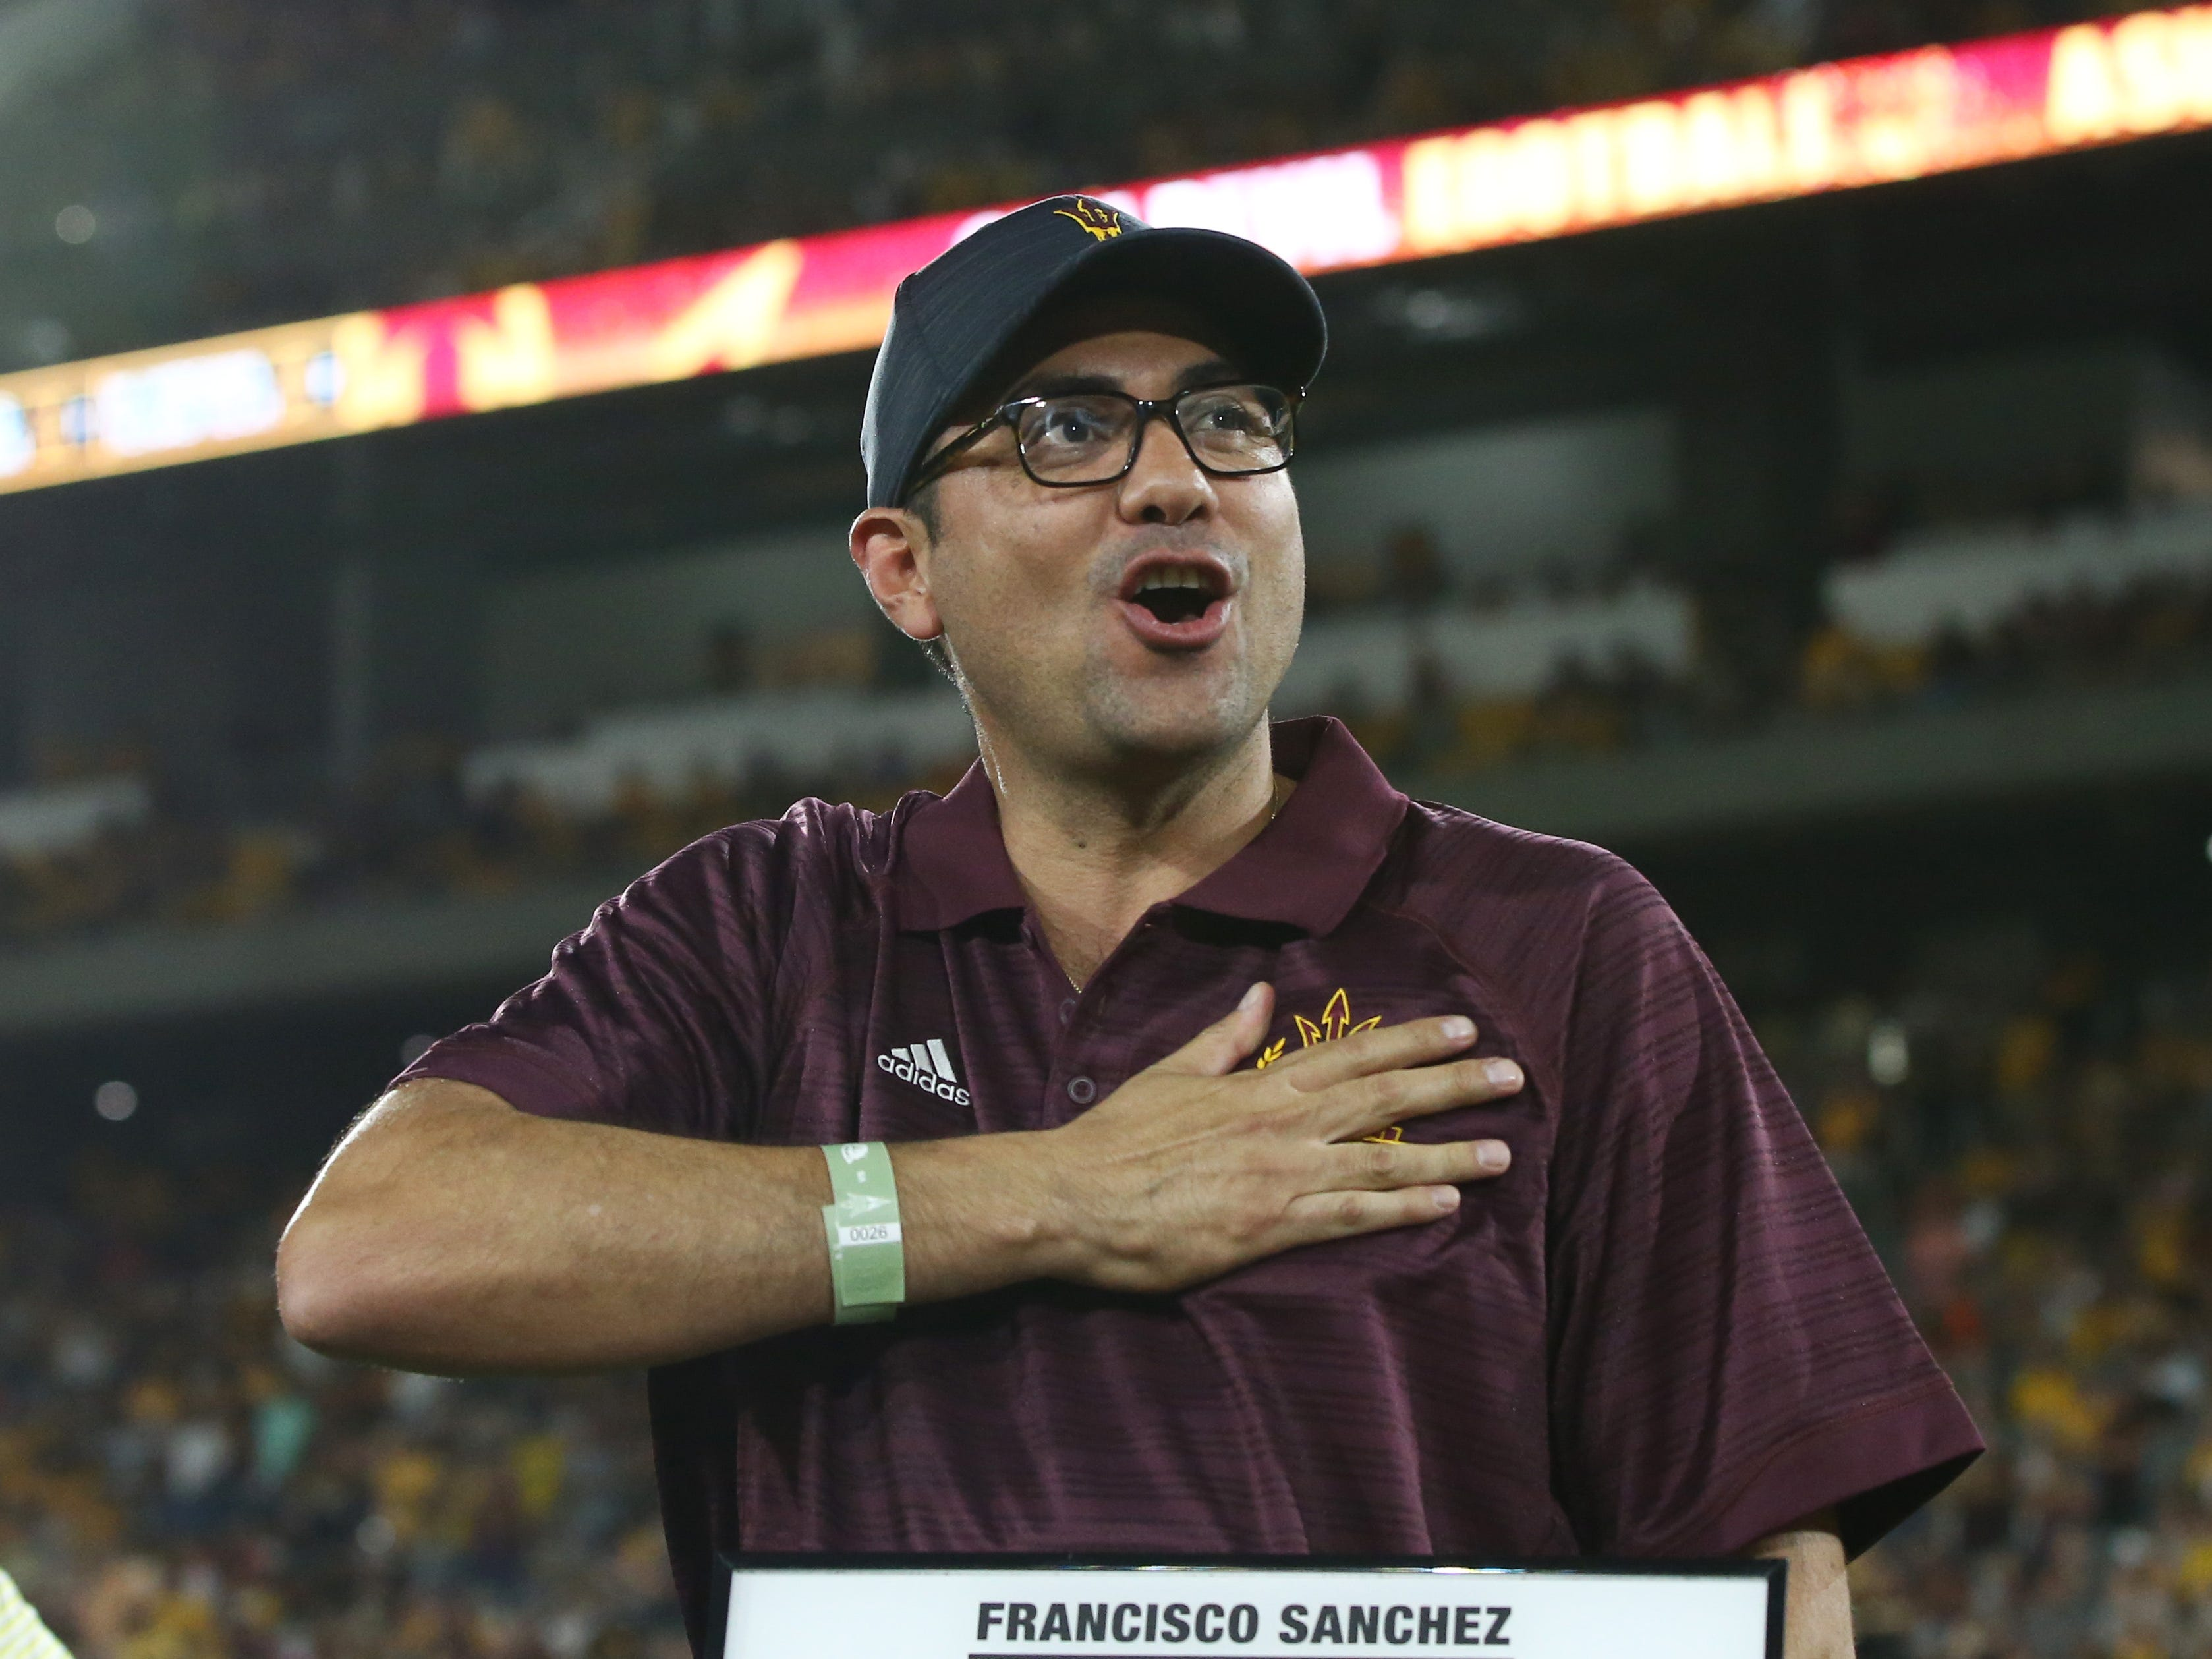 Arizona State swimming star Francisco Sanchez is welcomed into the ASU Athletics Hall of Frame on Sep. 29, 2018, at Sun Devil Stadium.